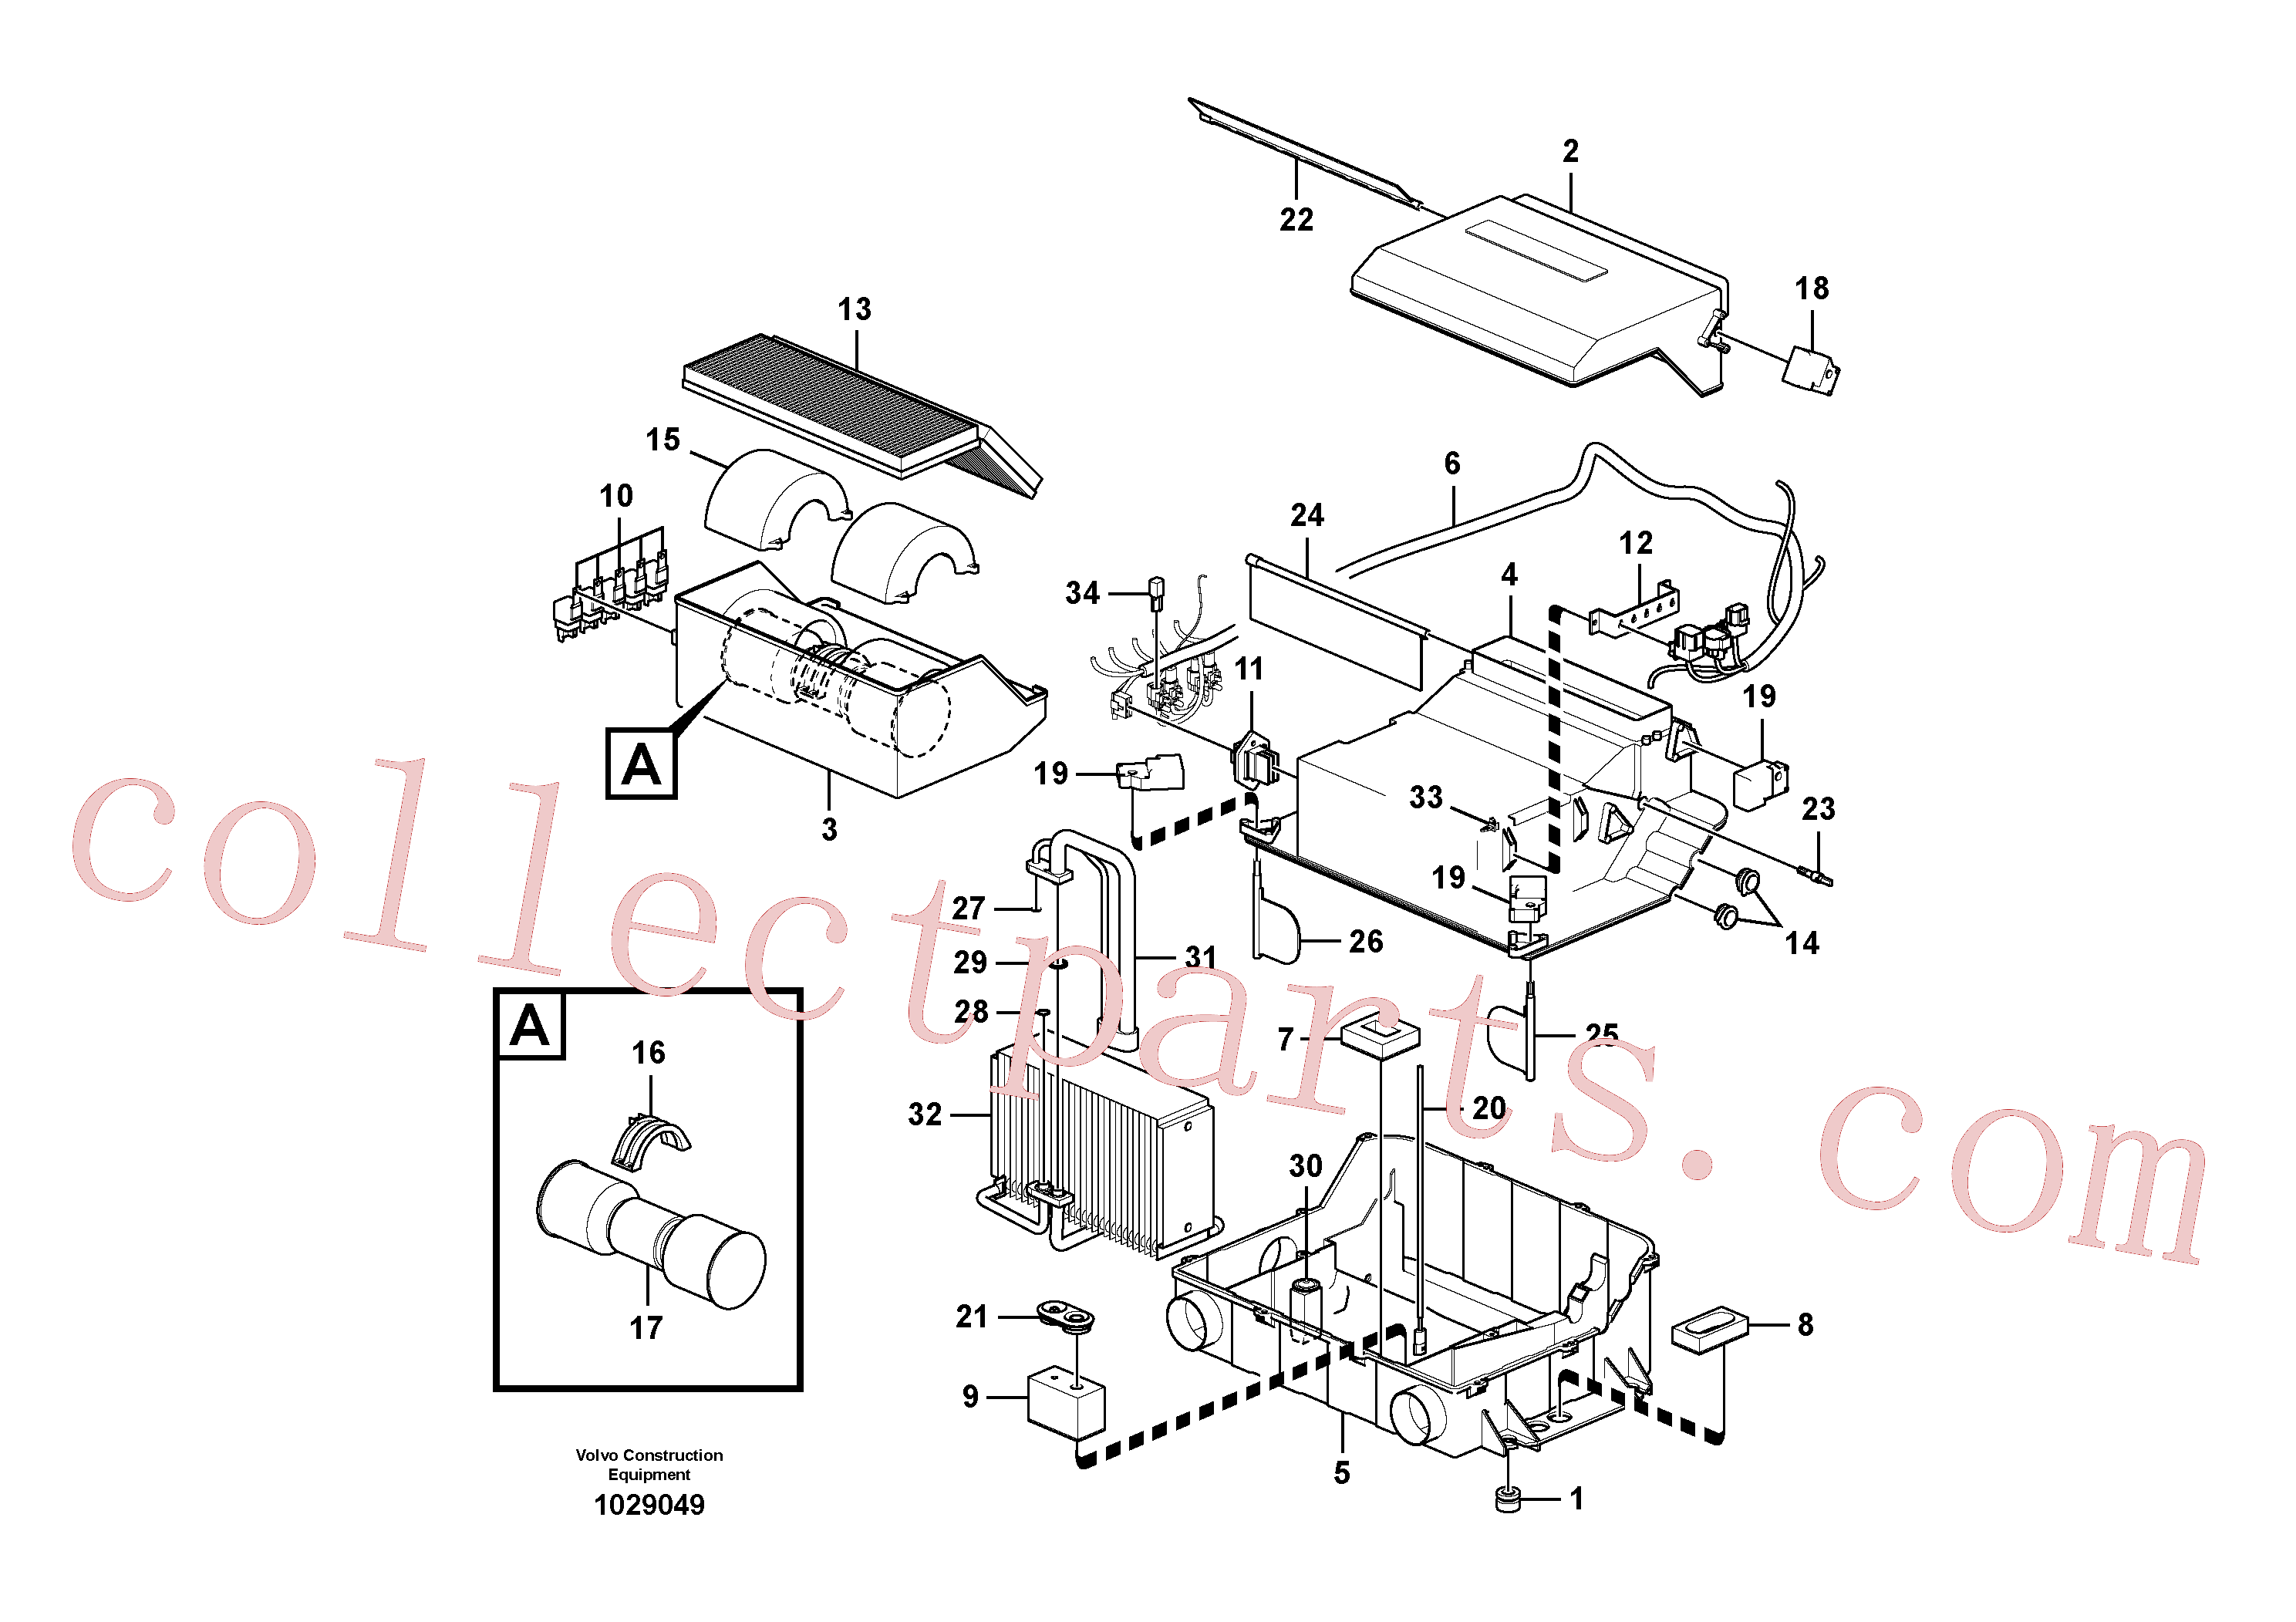 VOE14529132 for Volvo Cooling unit(1029049 assembly)